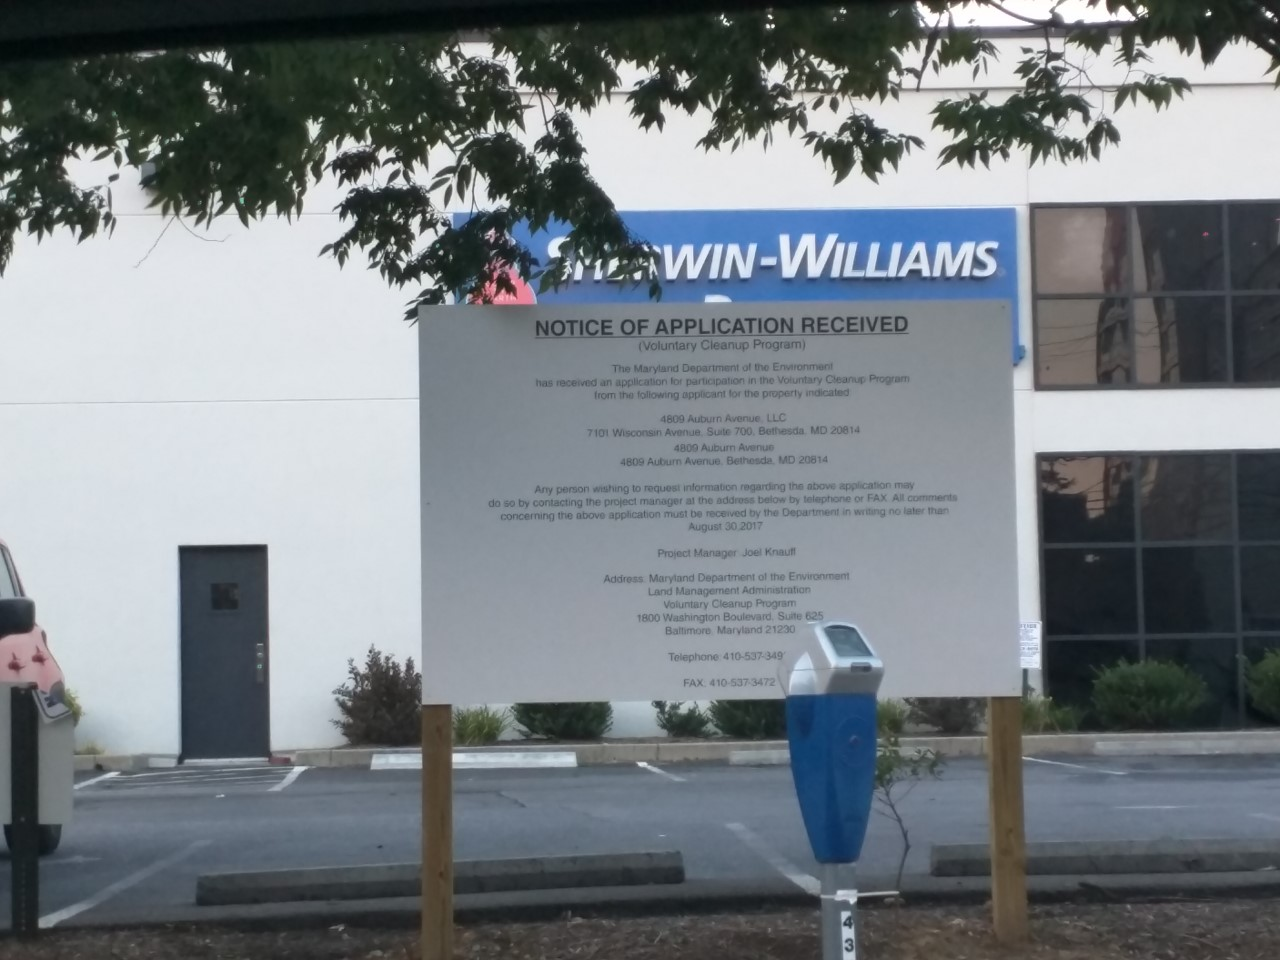 There S A New Sign That The Sherwin Williams Paint Is Being Read For Future Redevelopment Literally Has Been Posted On Property At